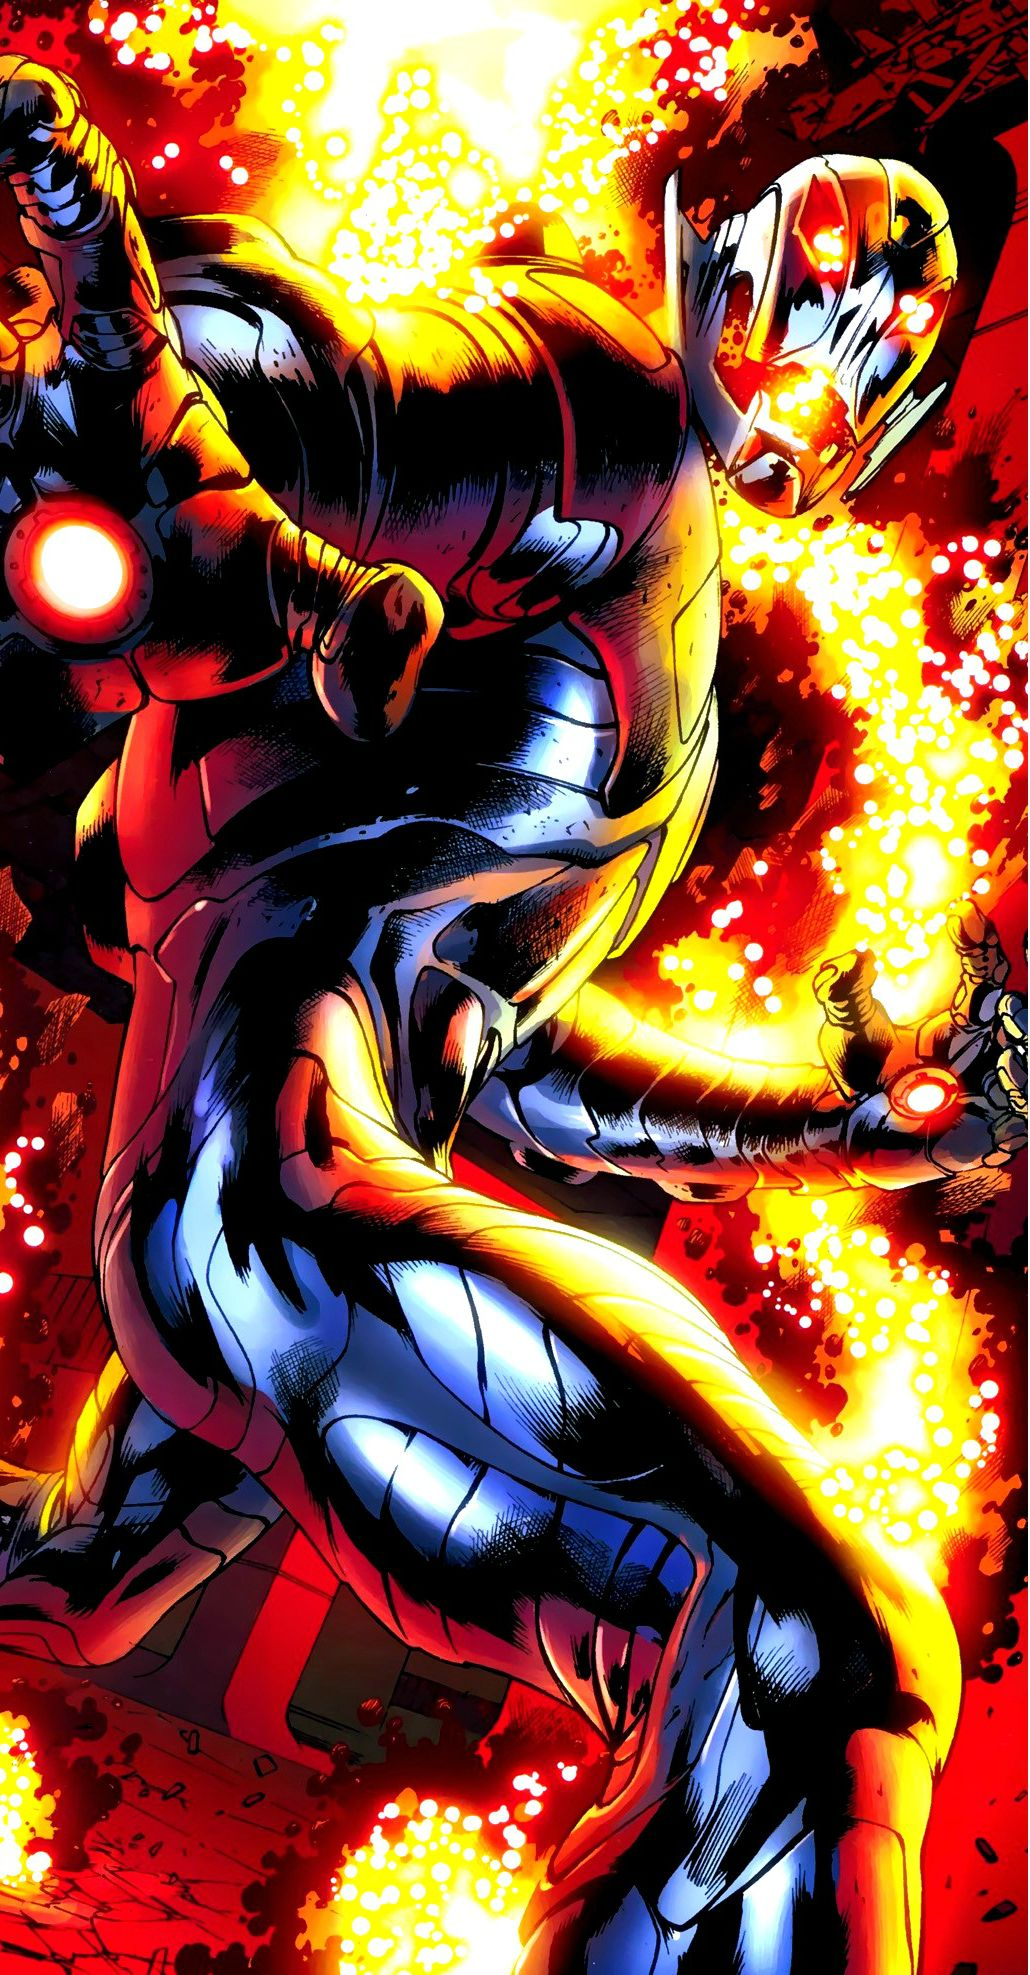 Ultron by Bryan Hitch